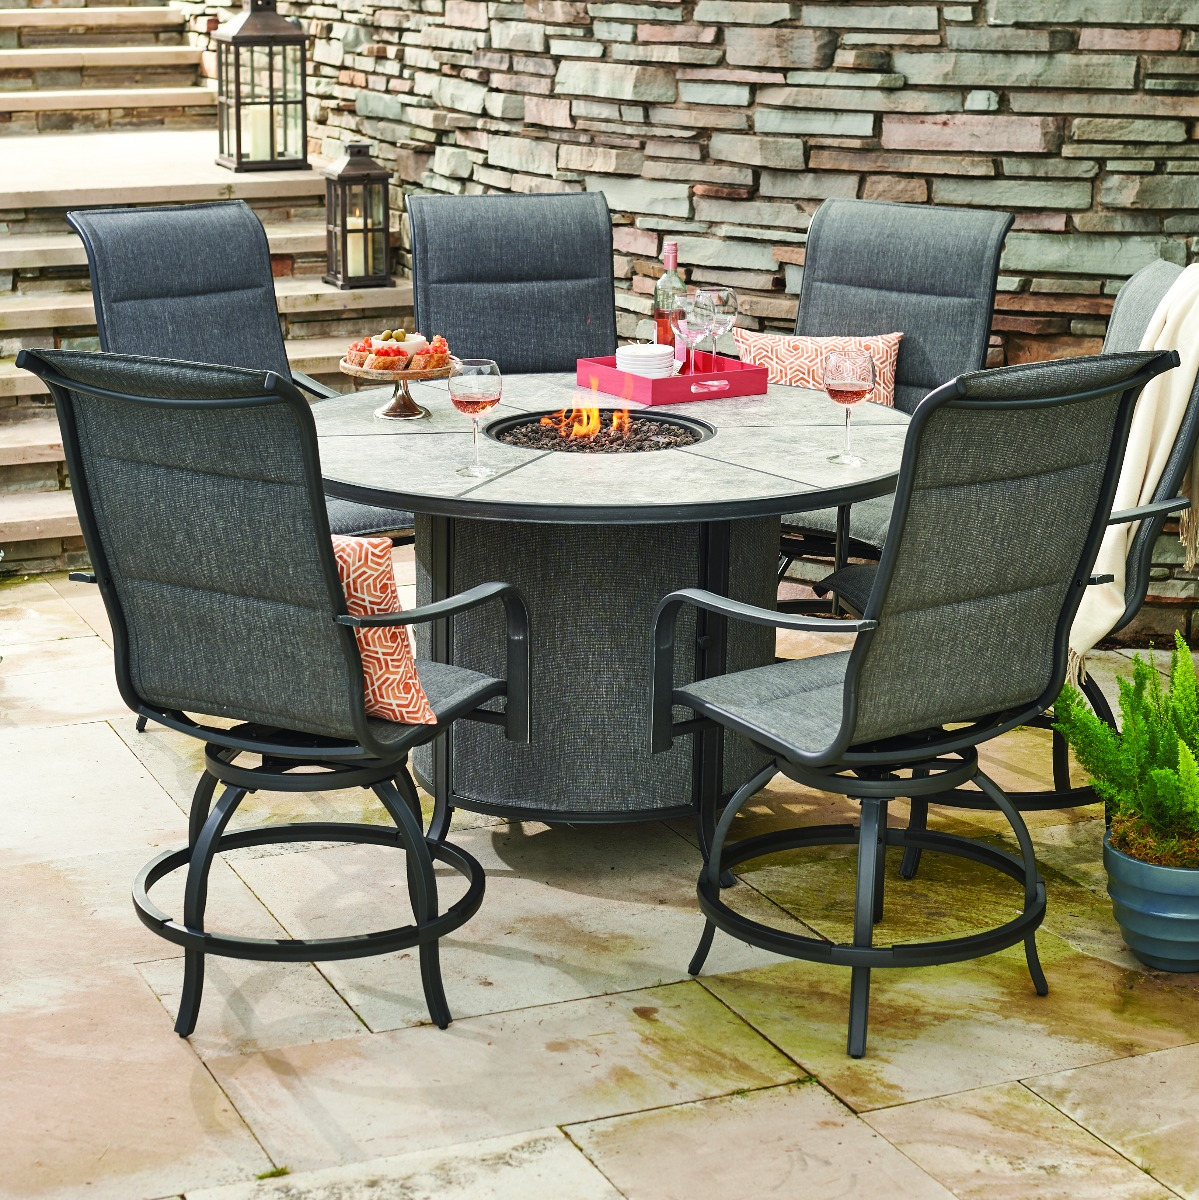 avellino fire pit counter height chair patio dining set